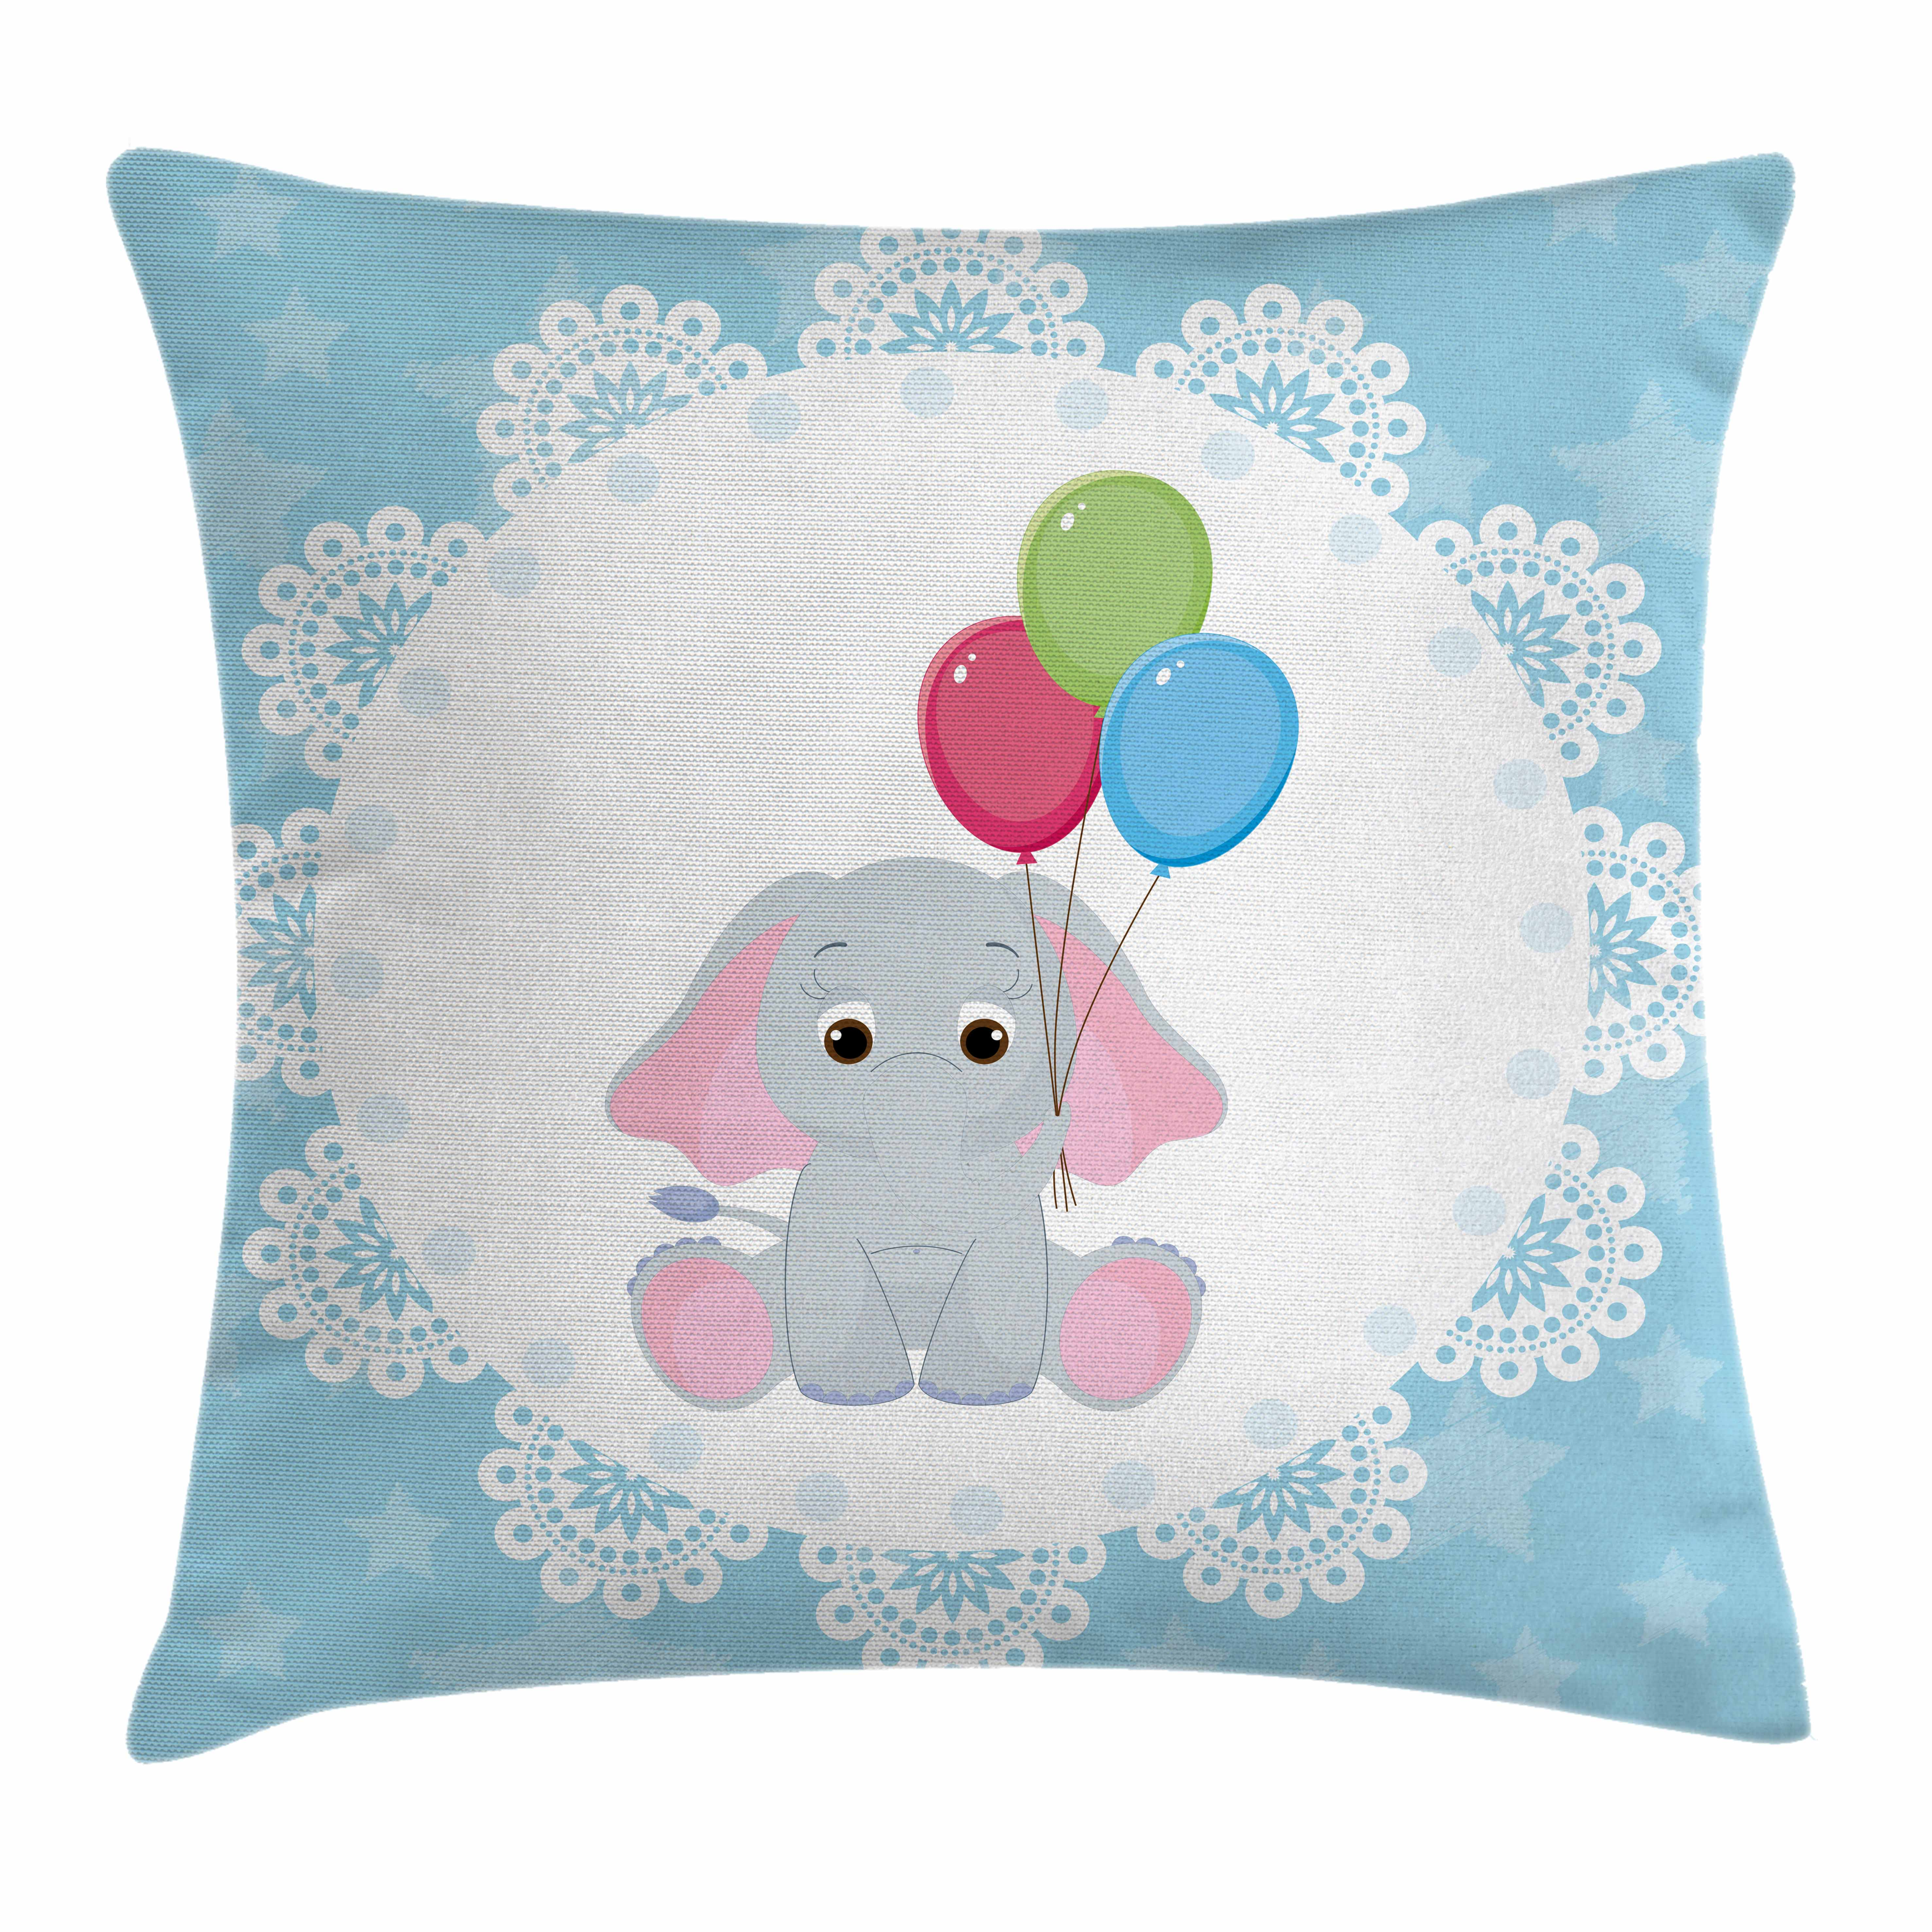 Elephant Nursery Decor Throw Pillow Cushion Cover, Stars Ornate Motifs Cartoon Kid Animal in Circle Holding Balloons, Decorative Square Accent Pillow Case, 16 X 16 Inches, Multicolor, by Ambesonne